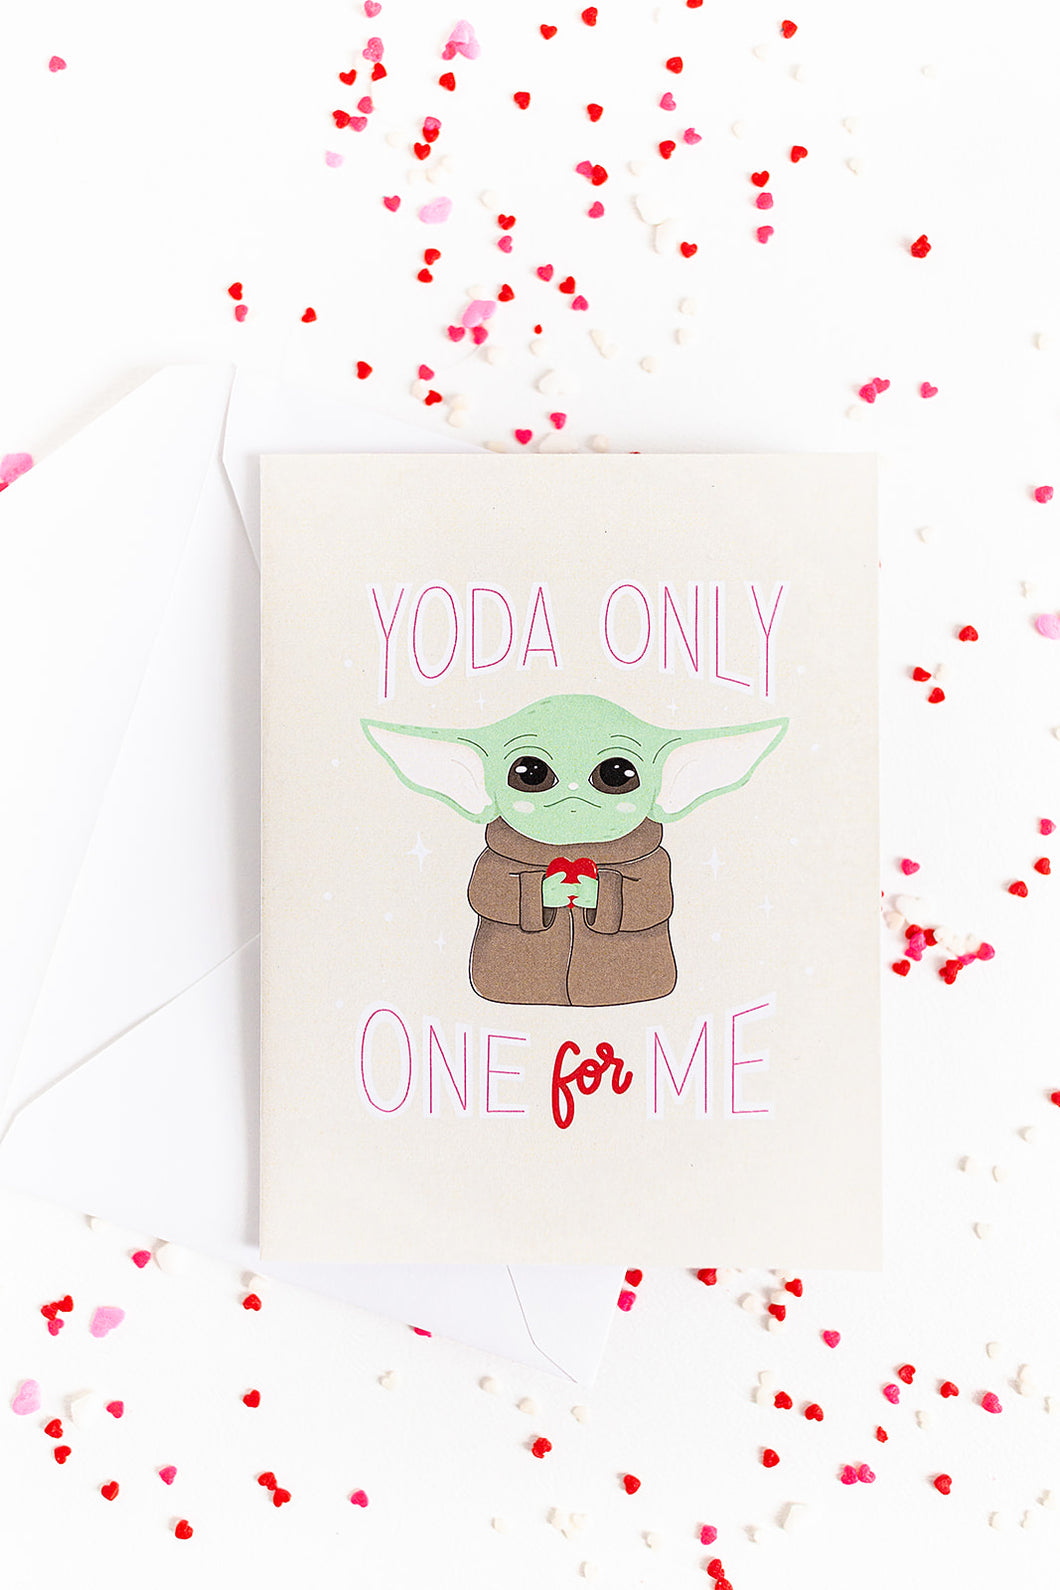 Yoda Only One For Me - Valentine's Day Card